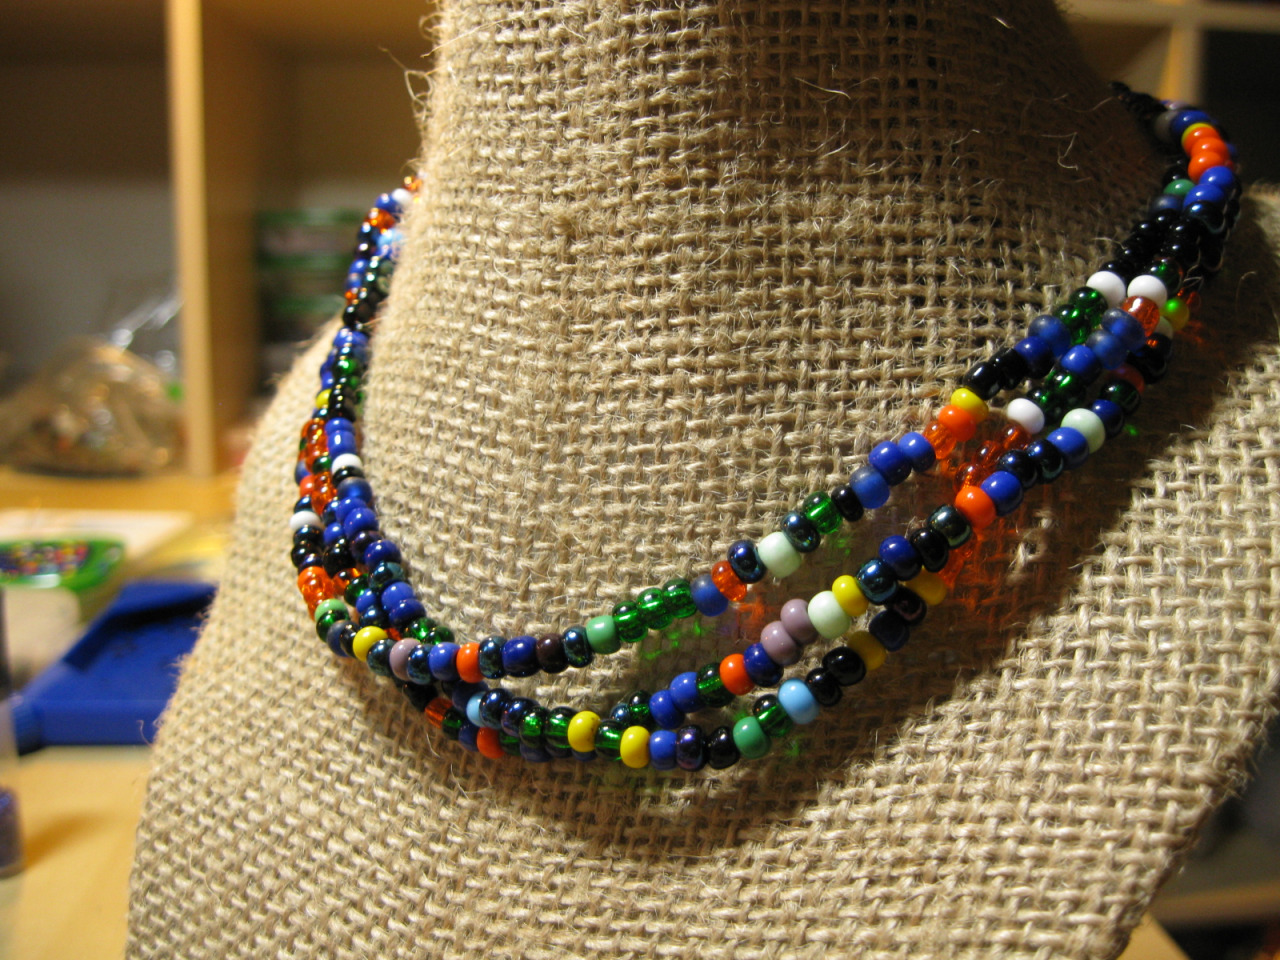 large-seed-beads-necklace-by-ta-meu-bem_16425370424_o.jpg